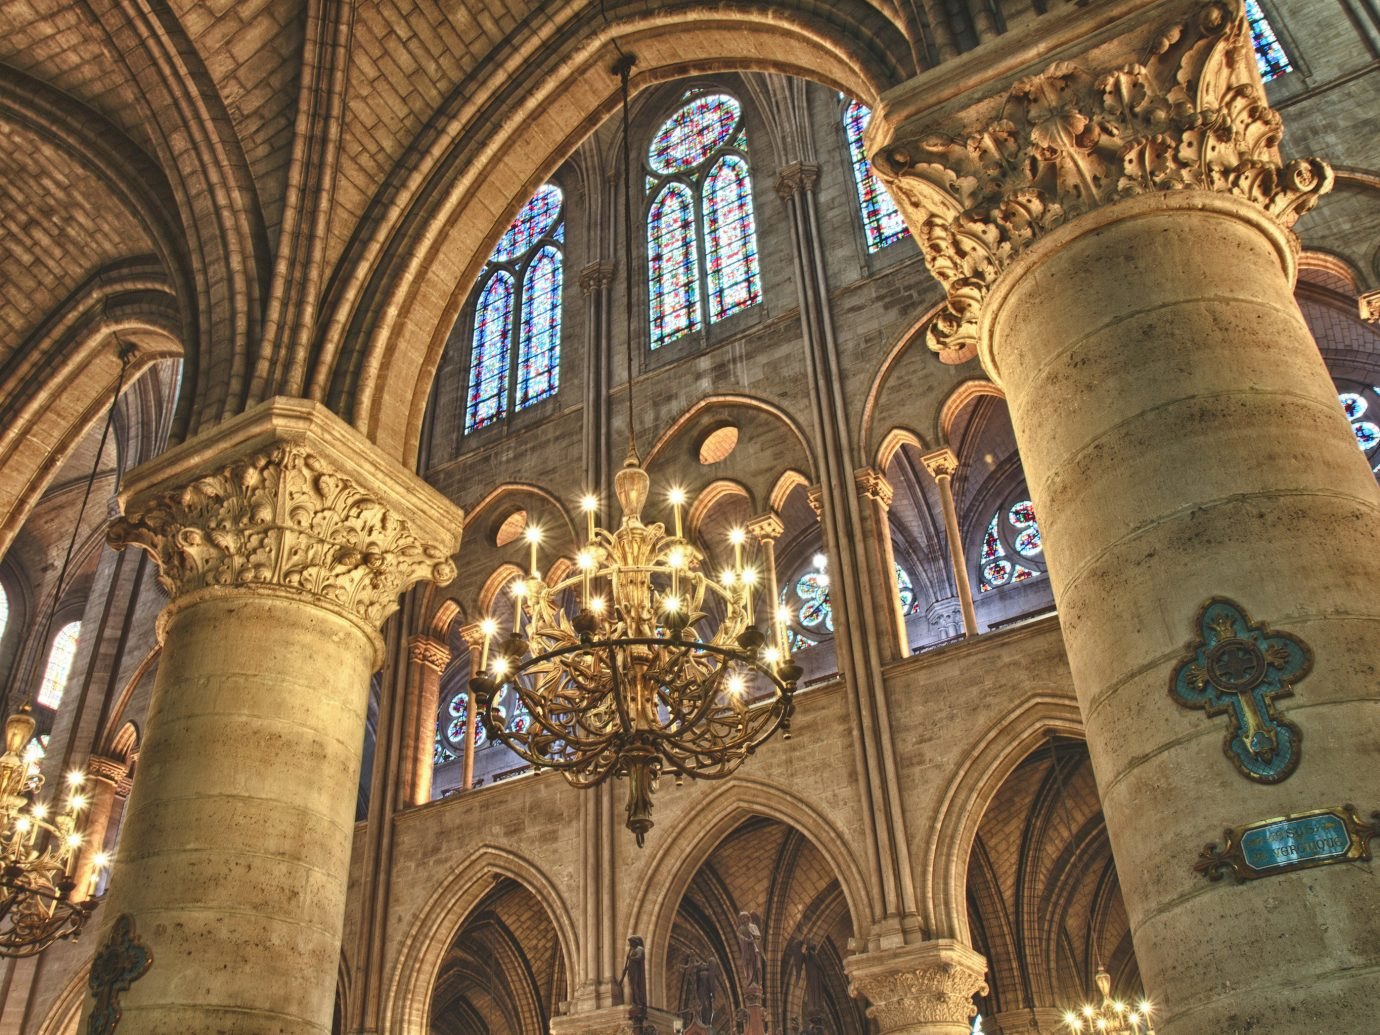 Trip Ideas indoor building cathedral place of worship Architecture byzantine architecture gothic architecture Church middle ages ancient history basilica monastery arch synagogue chapel stone colonnade